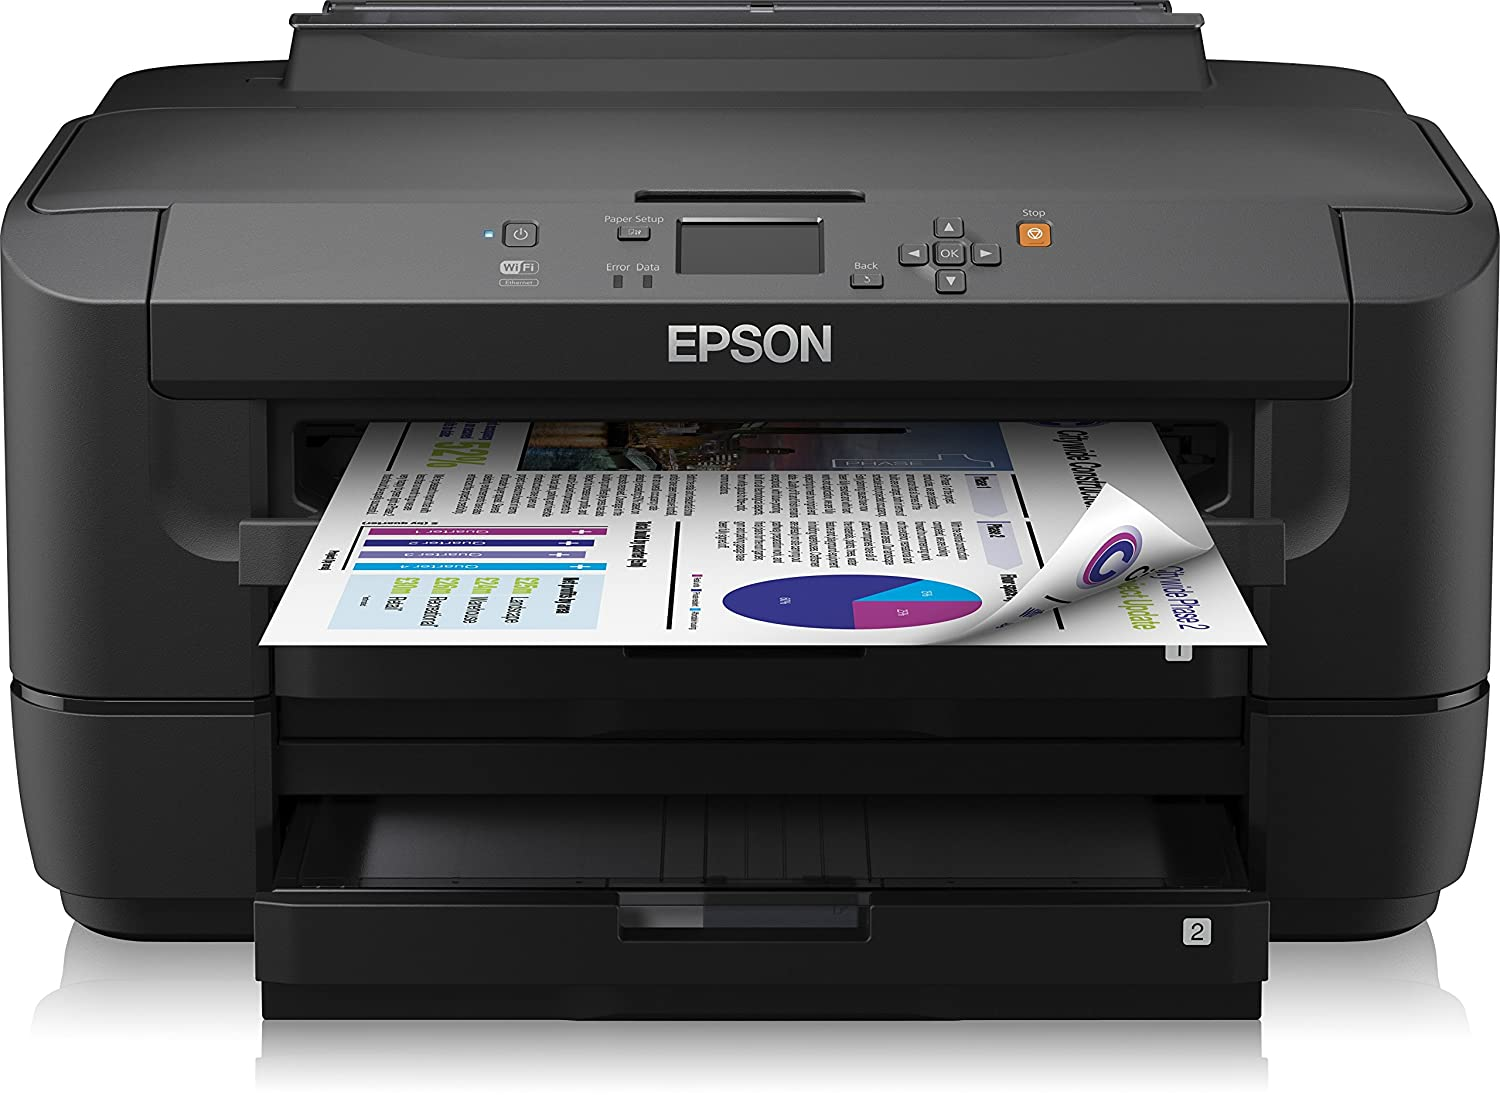 Epson WorkForce WF-7110DTW - Impresora a color (WiFi, WiFi Direct y Ethernet), color negro